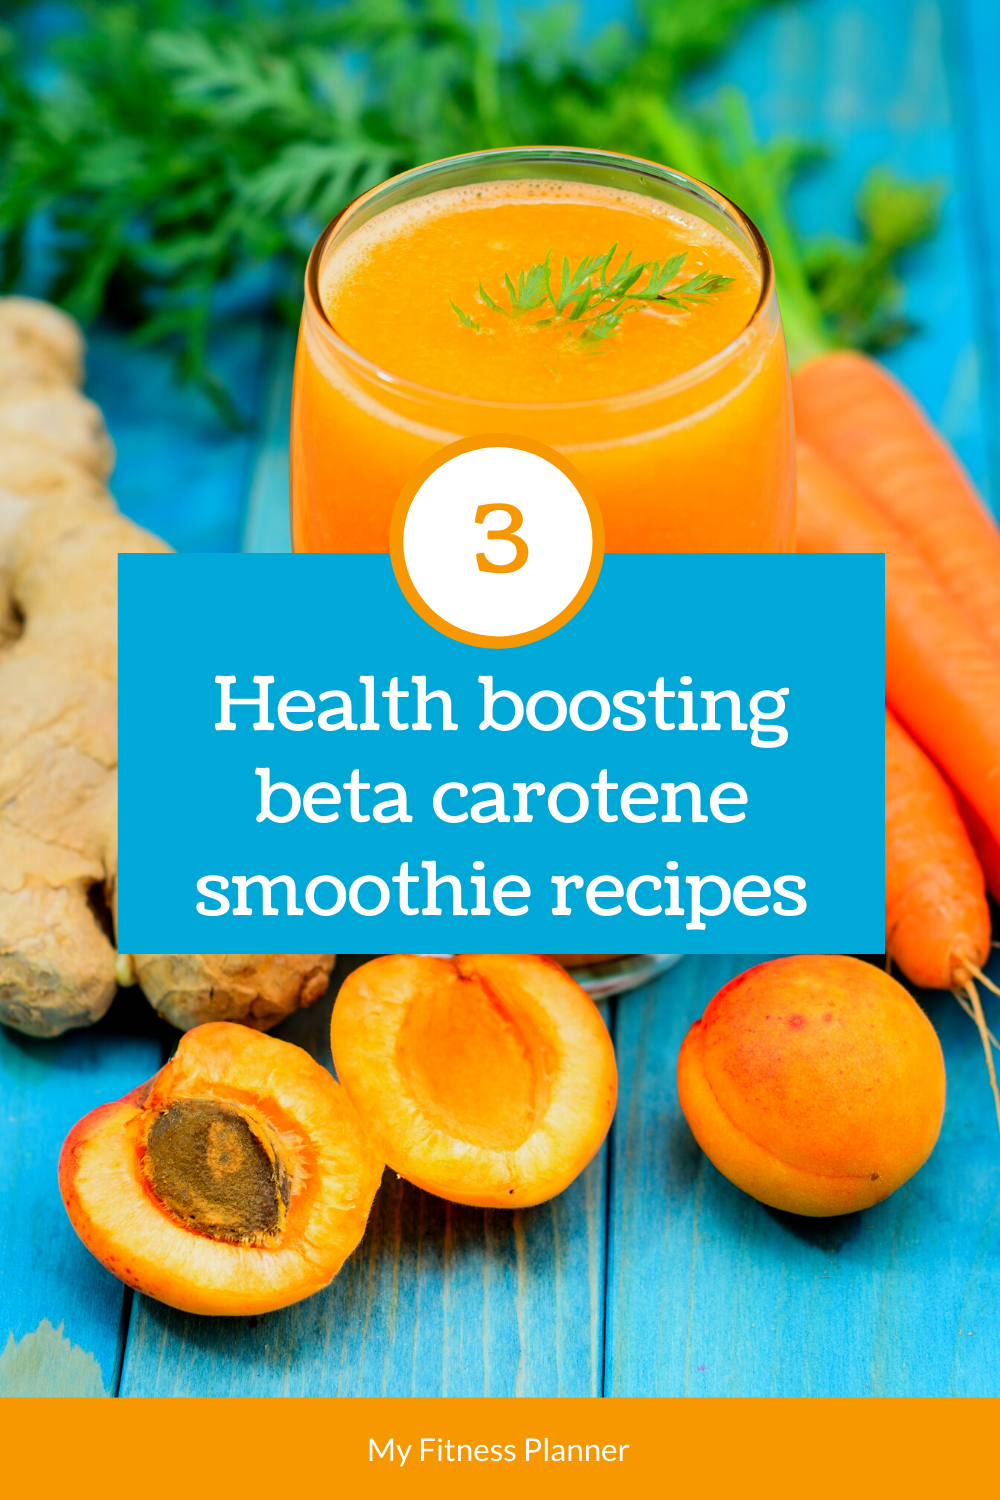 3 healthy smoothie recipes using beta carotene foods to increase your vitamin A and antioxidant levels